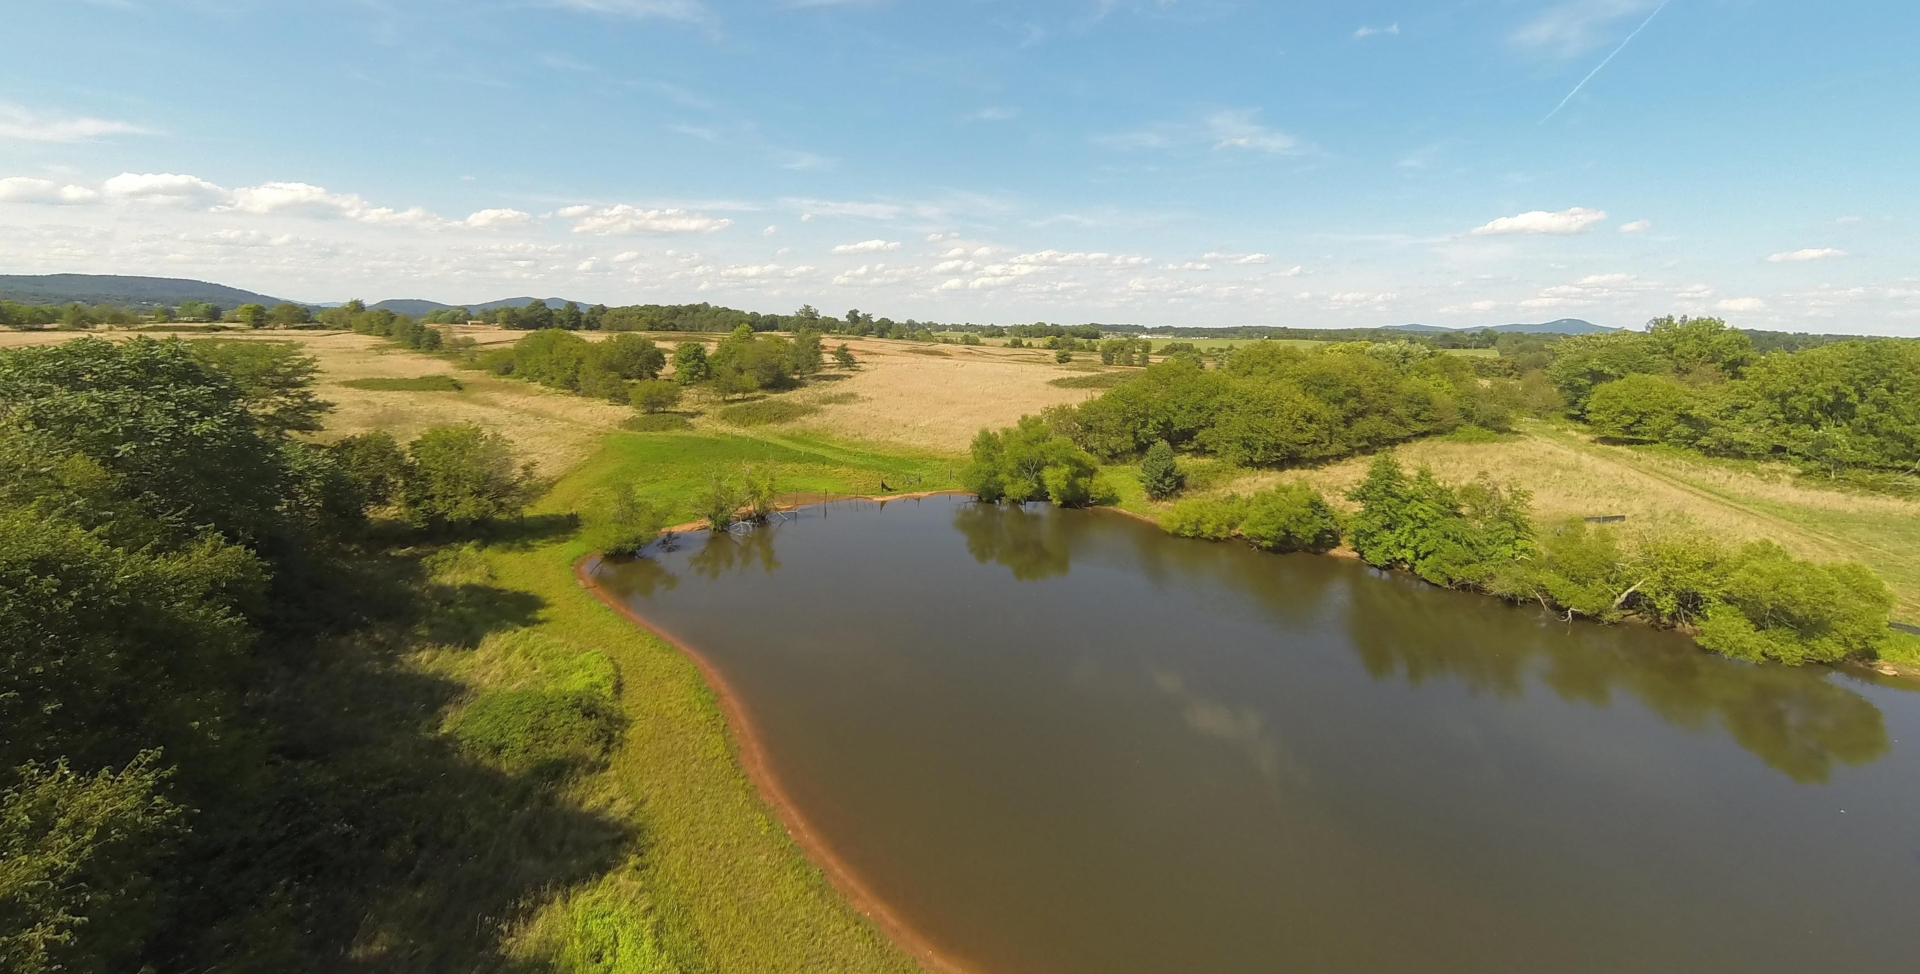 Aerial View of Community Lake